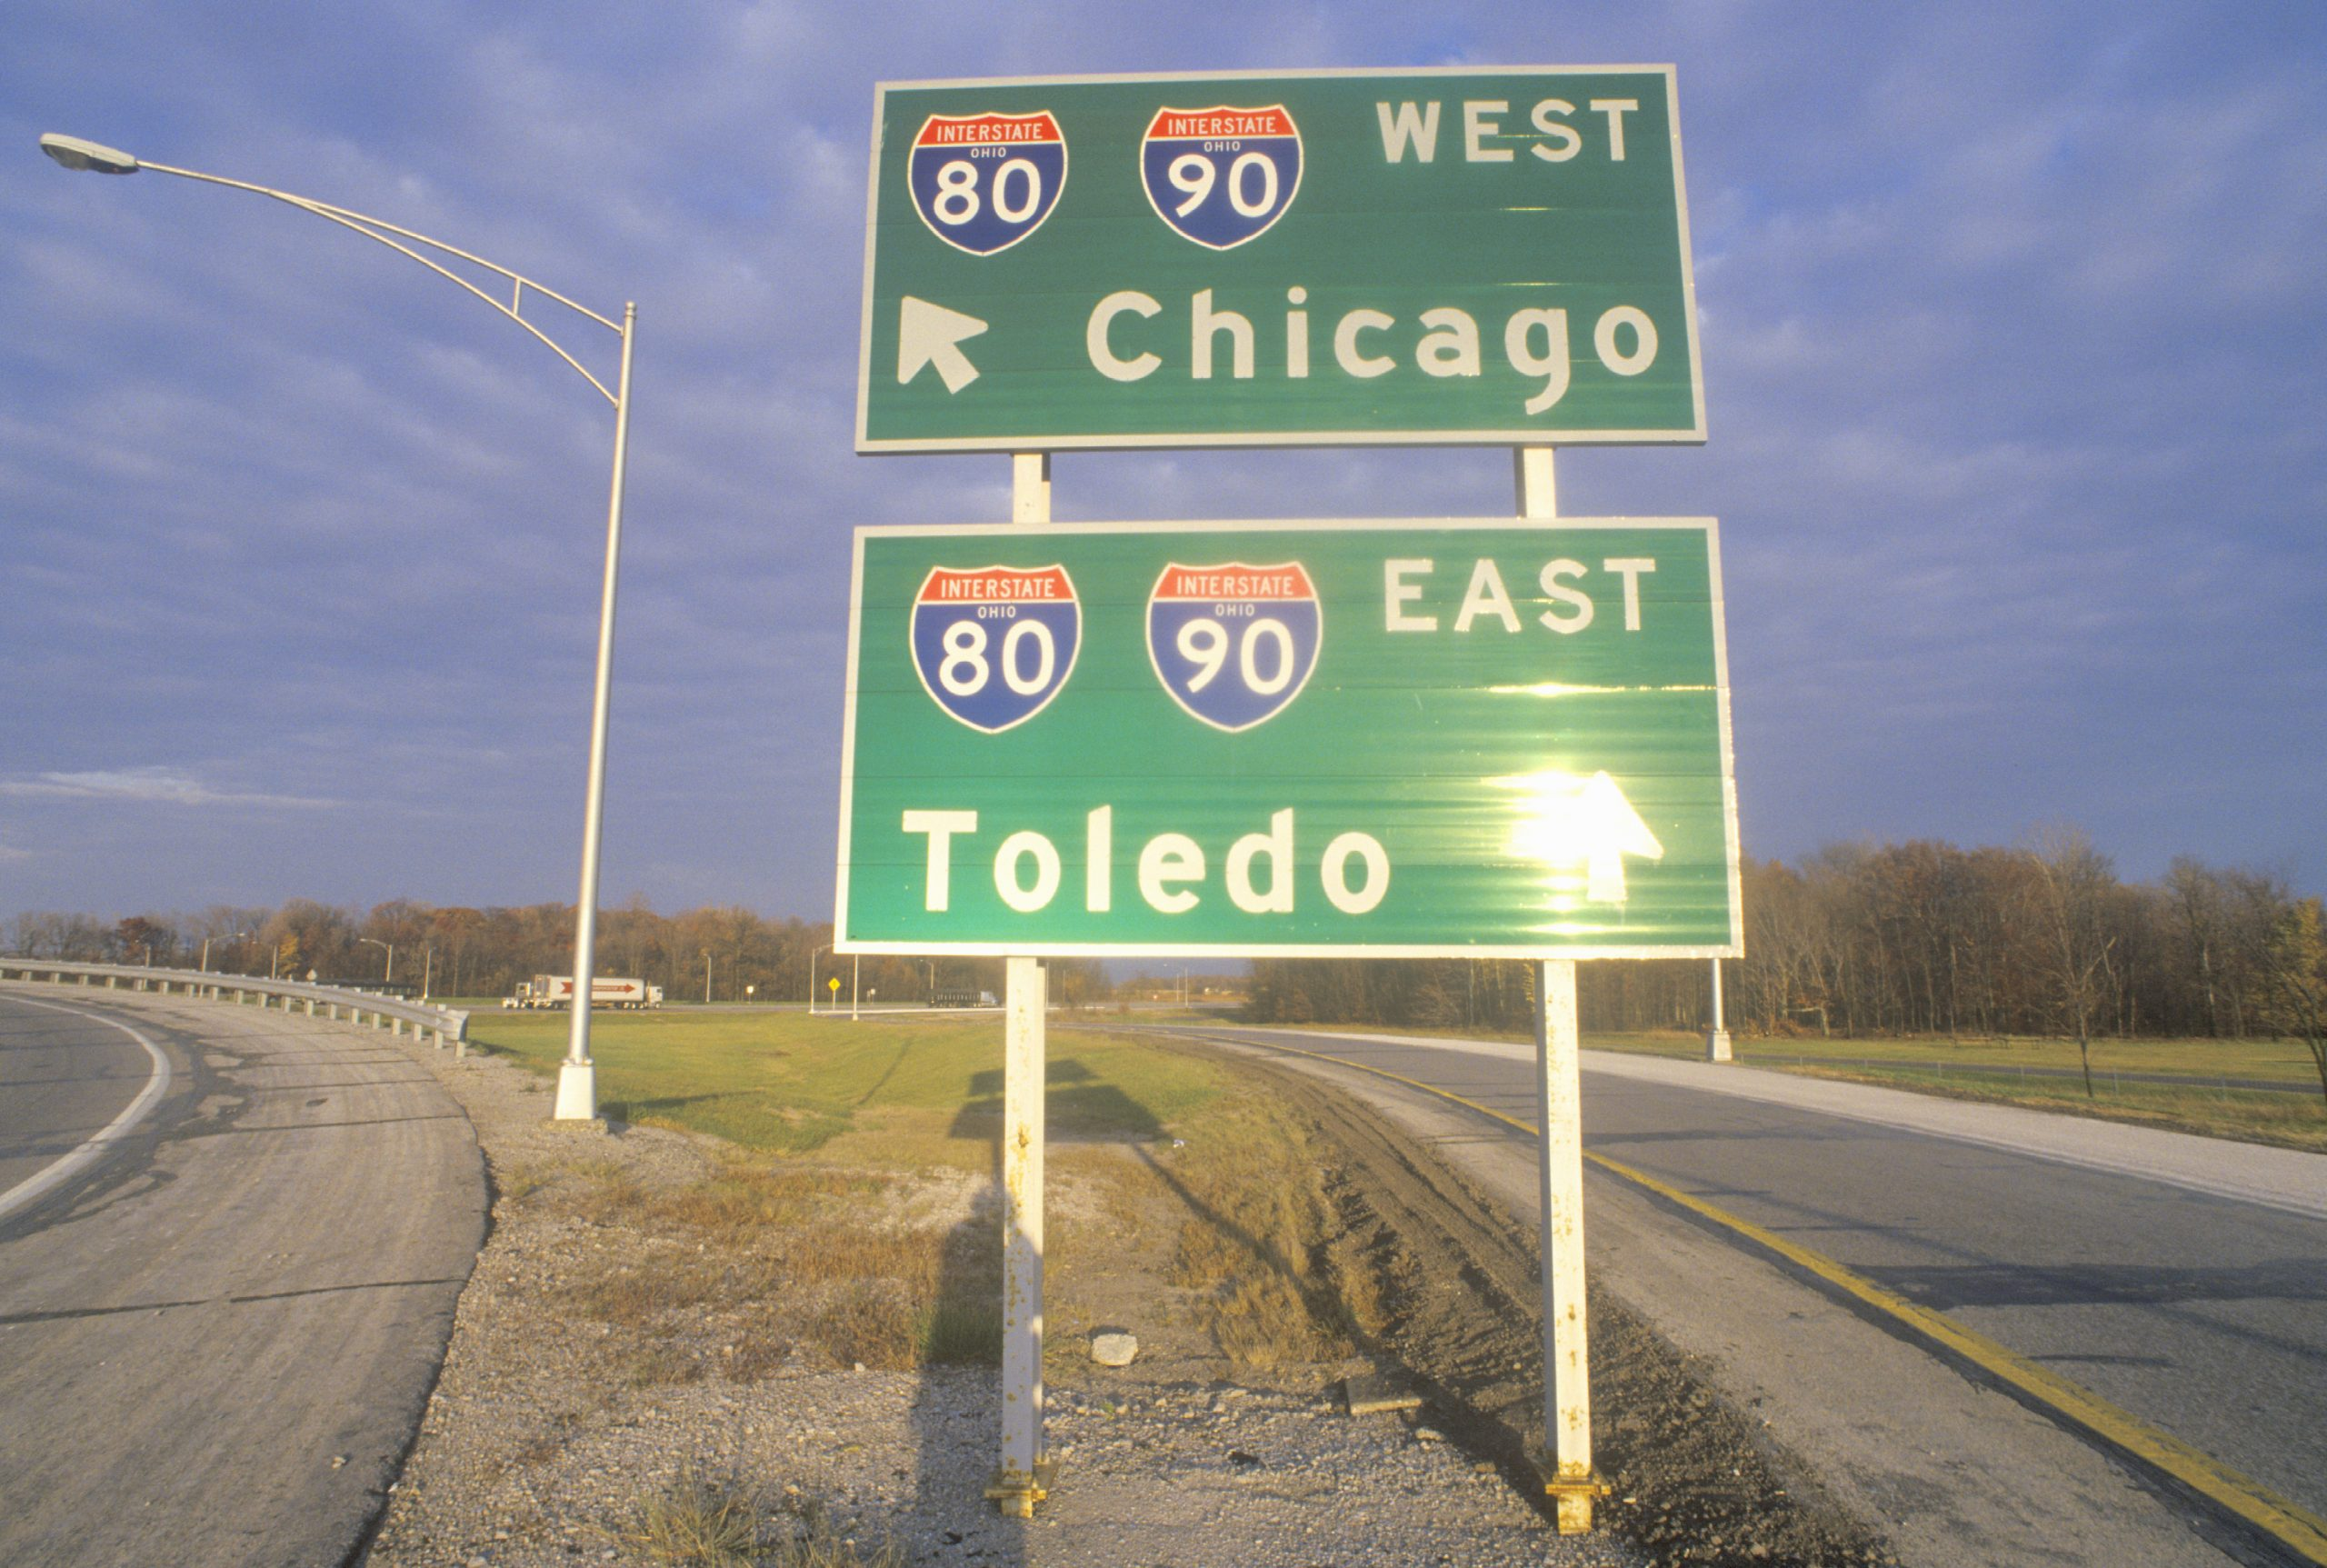 Chicago, IL and Toledo, OH interstate highway sign